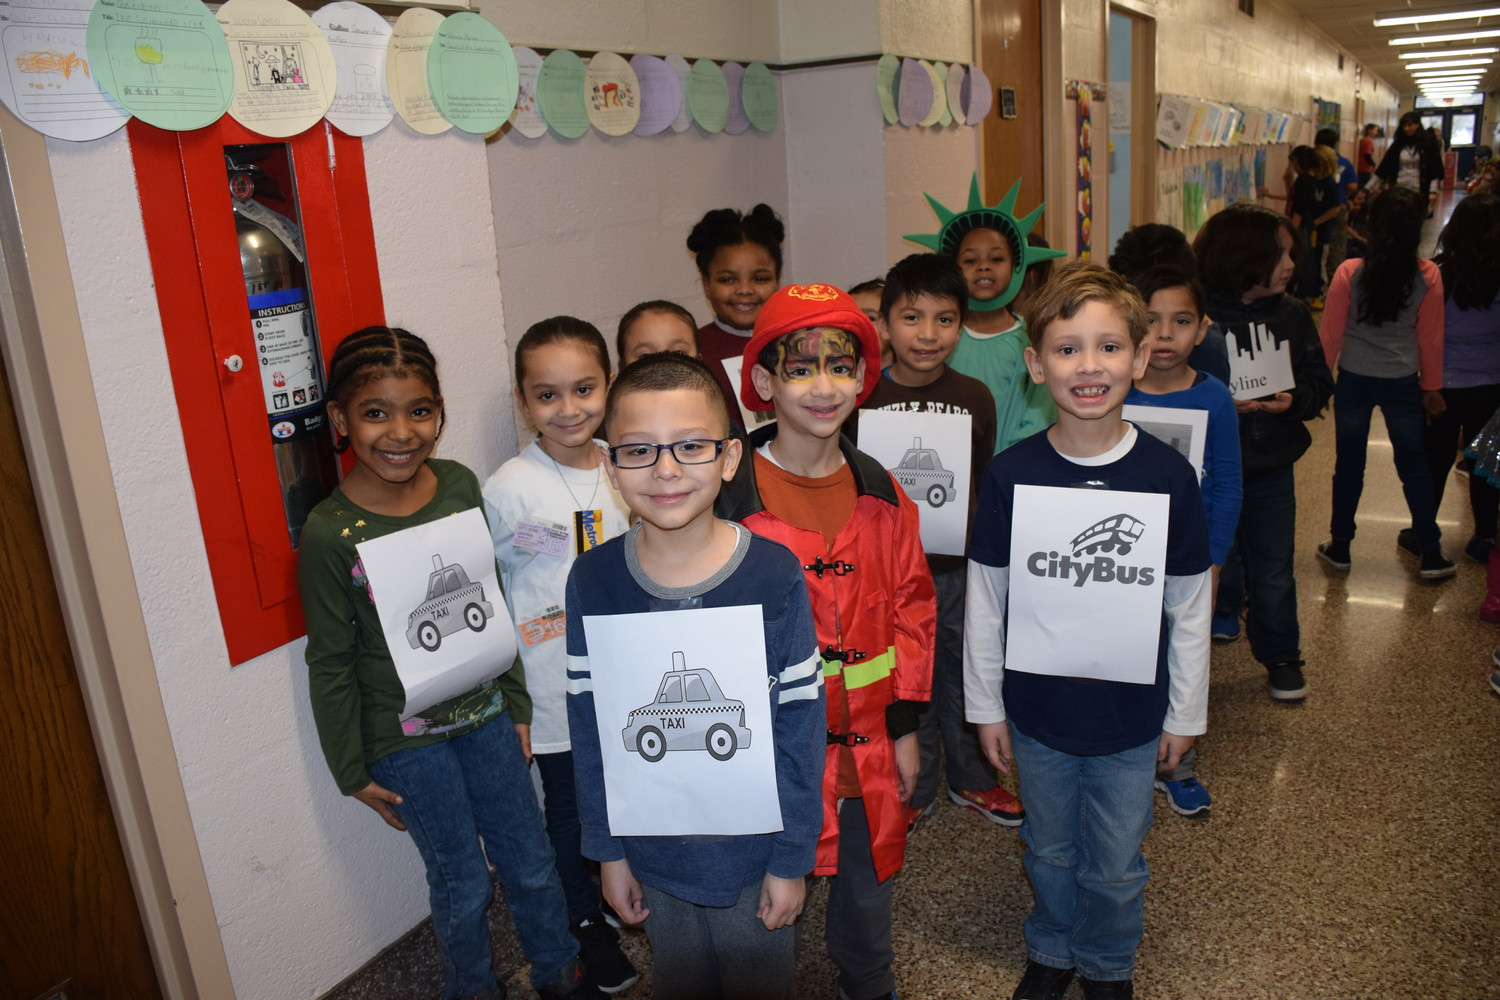 Kara Maguire's first-graders took part in the celebration as different forms of New York City transportation.